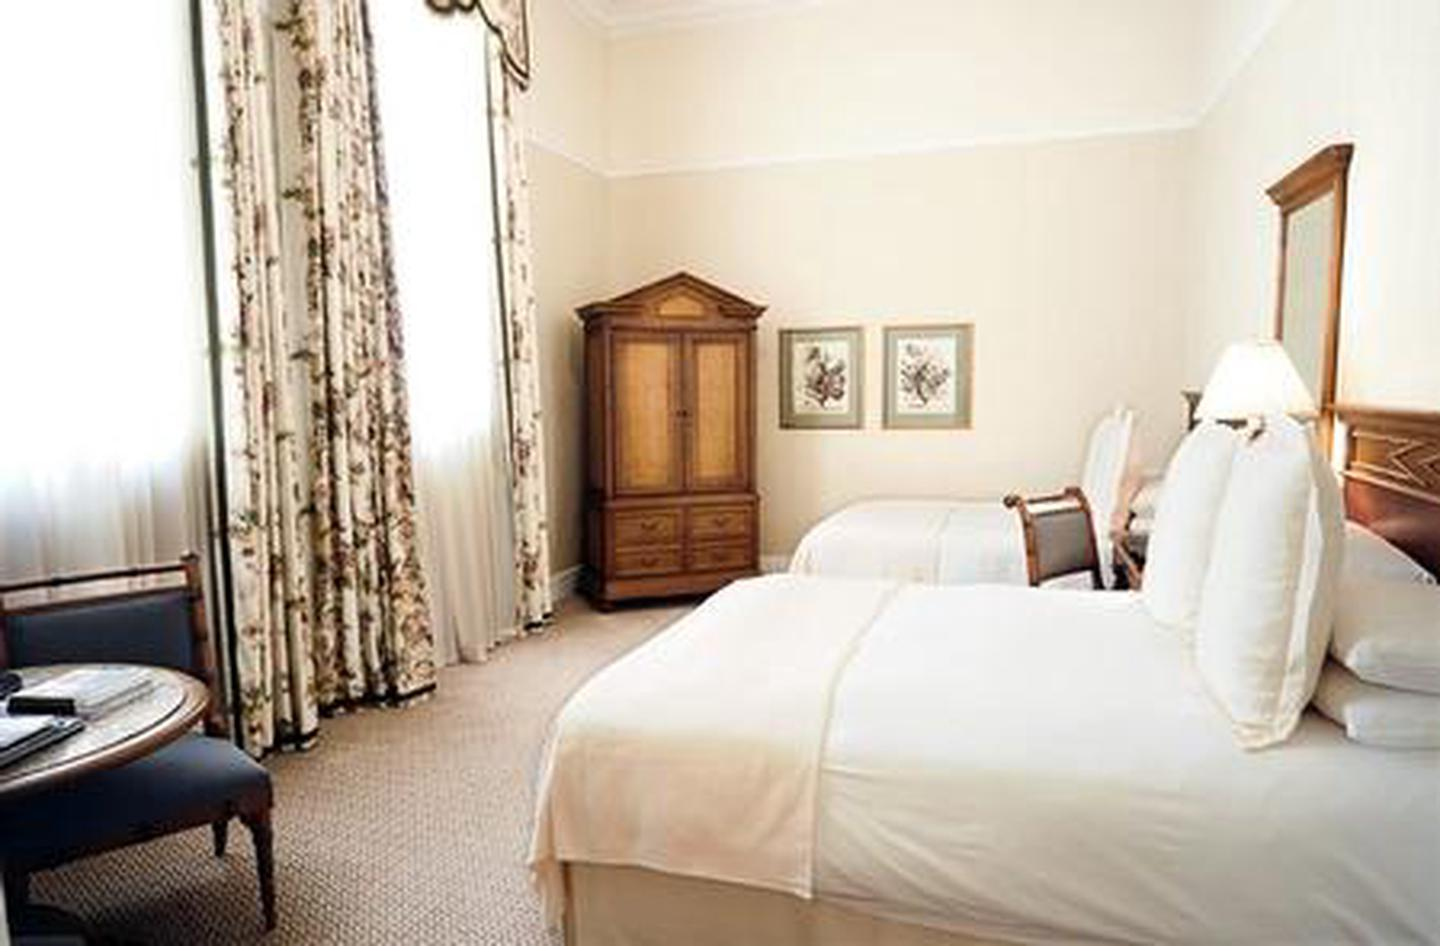 Charming RoomsThe Capital Hotel boasts 94 heritage accommodations including 15 Capital Great Rooms and four luxury suites.